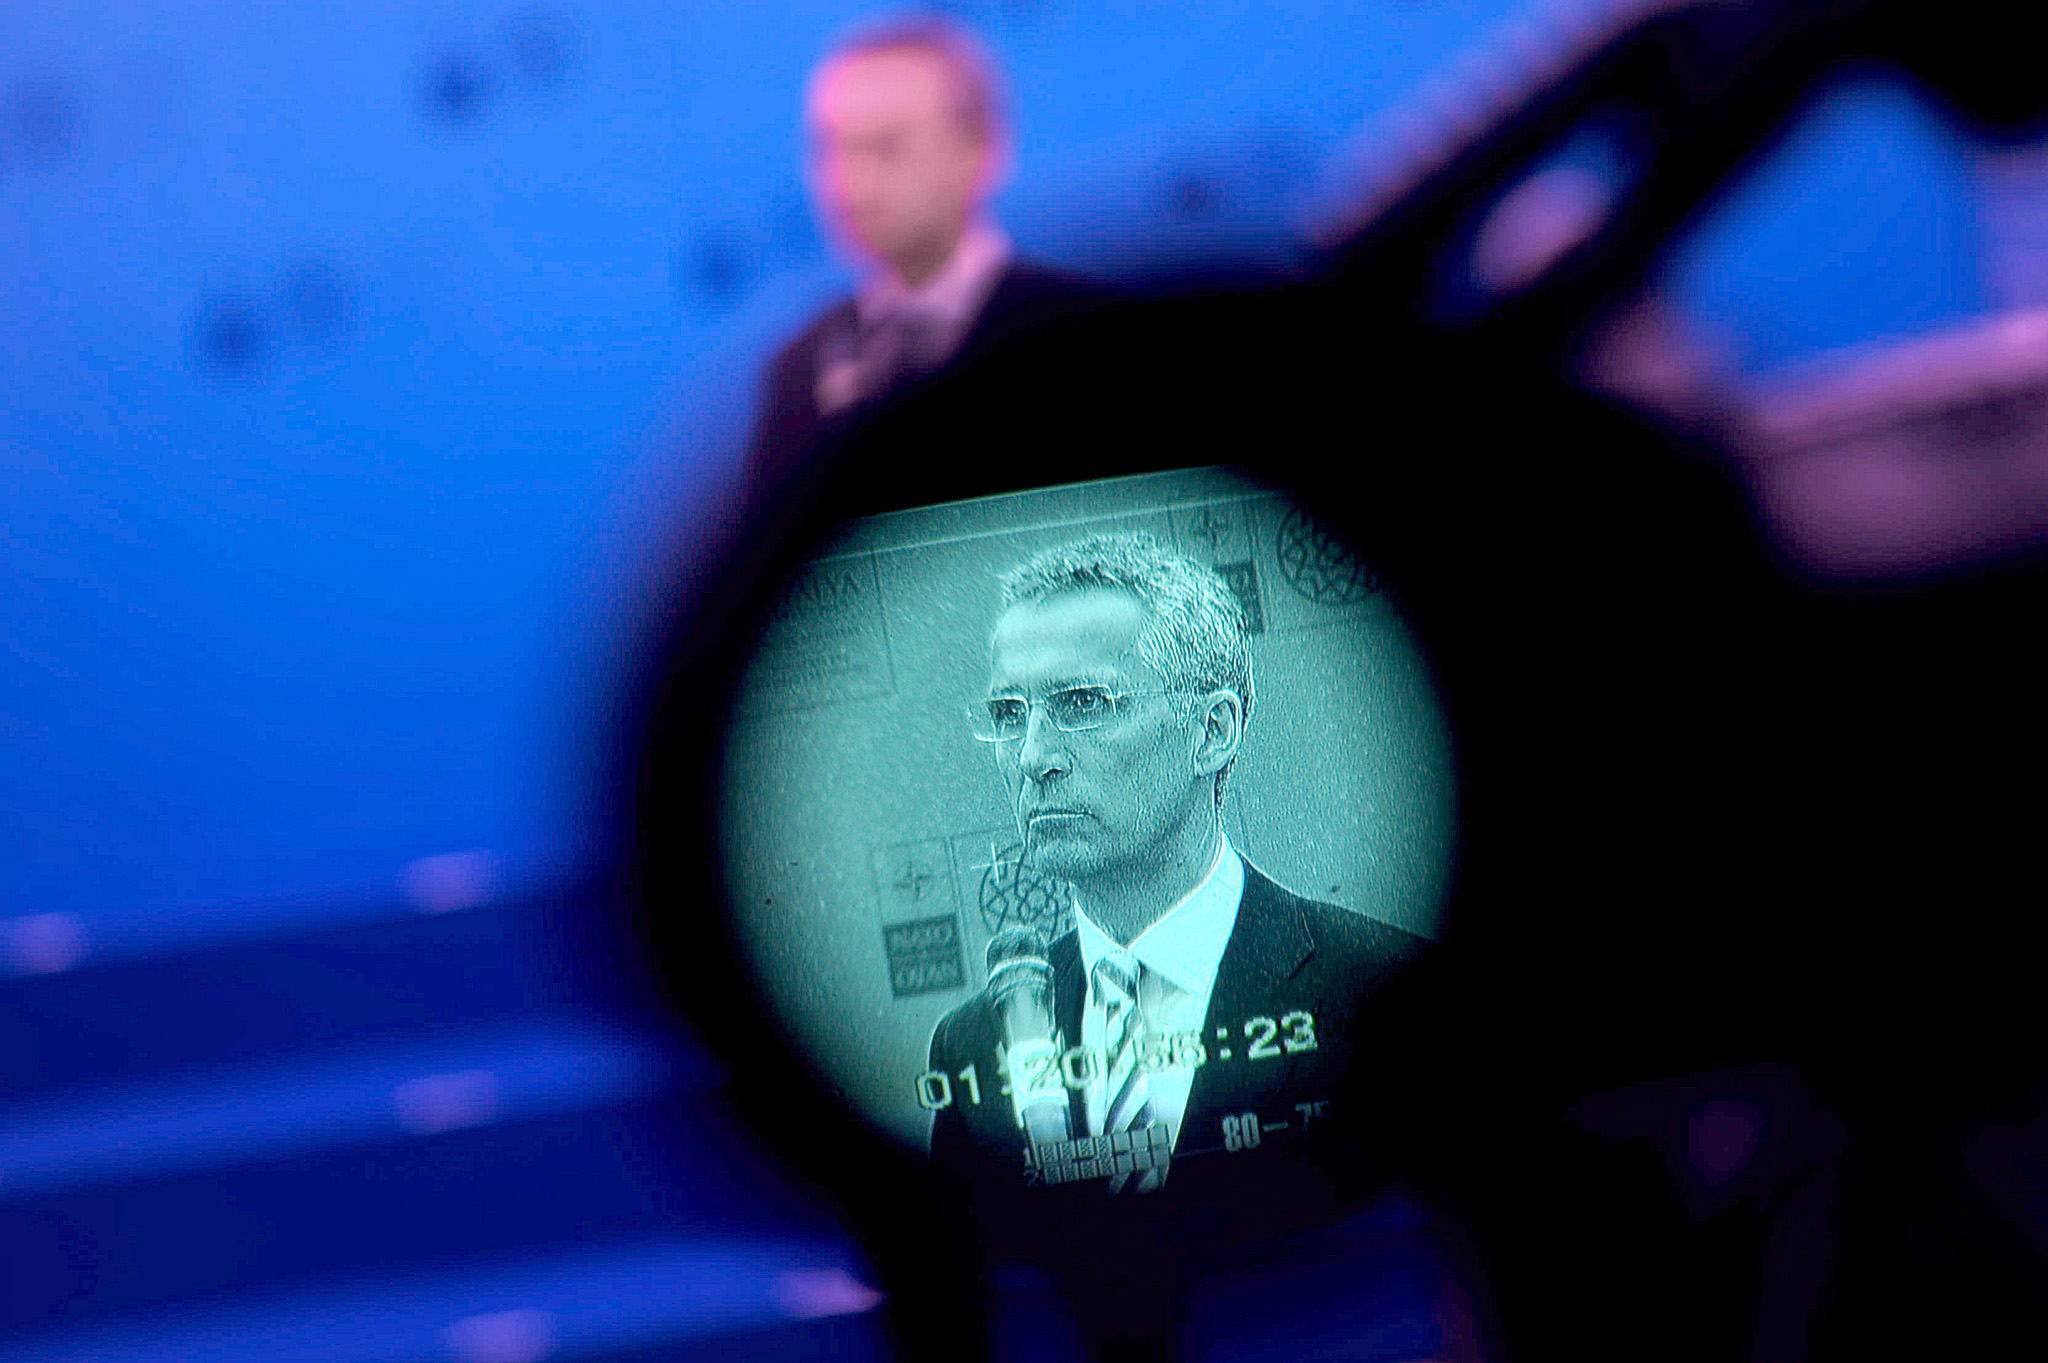 NATO Secretary General Jens Stoltenberg ...NATO Secretary General Jens Stoltenberg is seen on the screen of a camera as he delivers a speech at NATO Foreign Minister's Meeting in Antalya on May 13, 2015. Turkey hosts NATO foreign ministers for a meeting to discuss threats to the alliance including Islamic State jihadists and the policies of Russia on its borders.    AFP PHOTO / OZAN KOSEOZAN KOSE/AFP/Getty Images